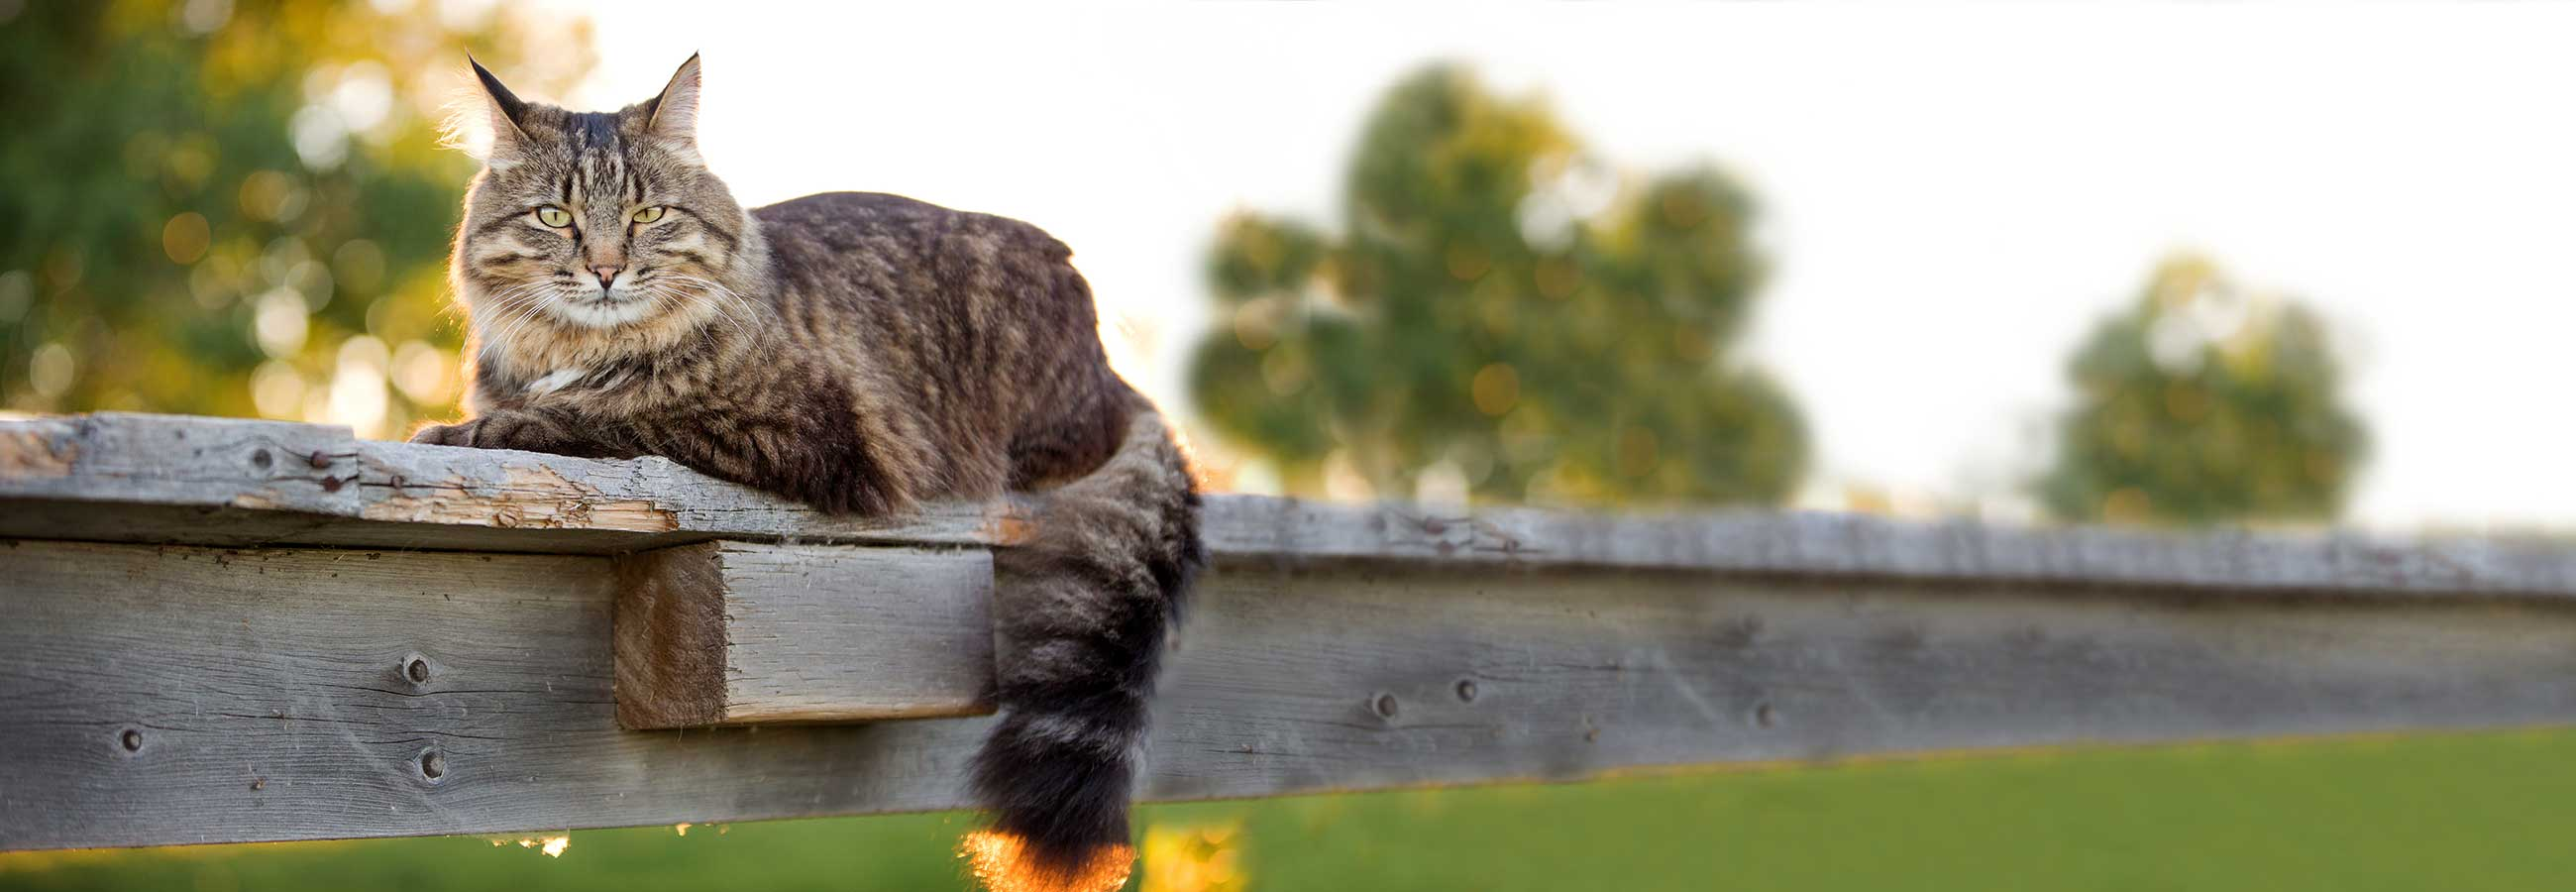 Fuzzy grey cat laying on wooden post